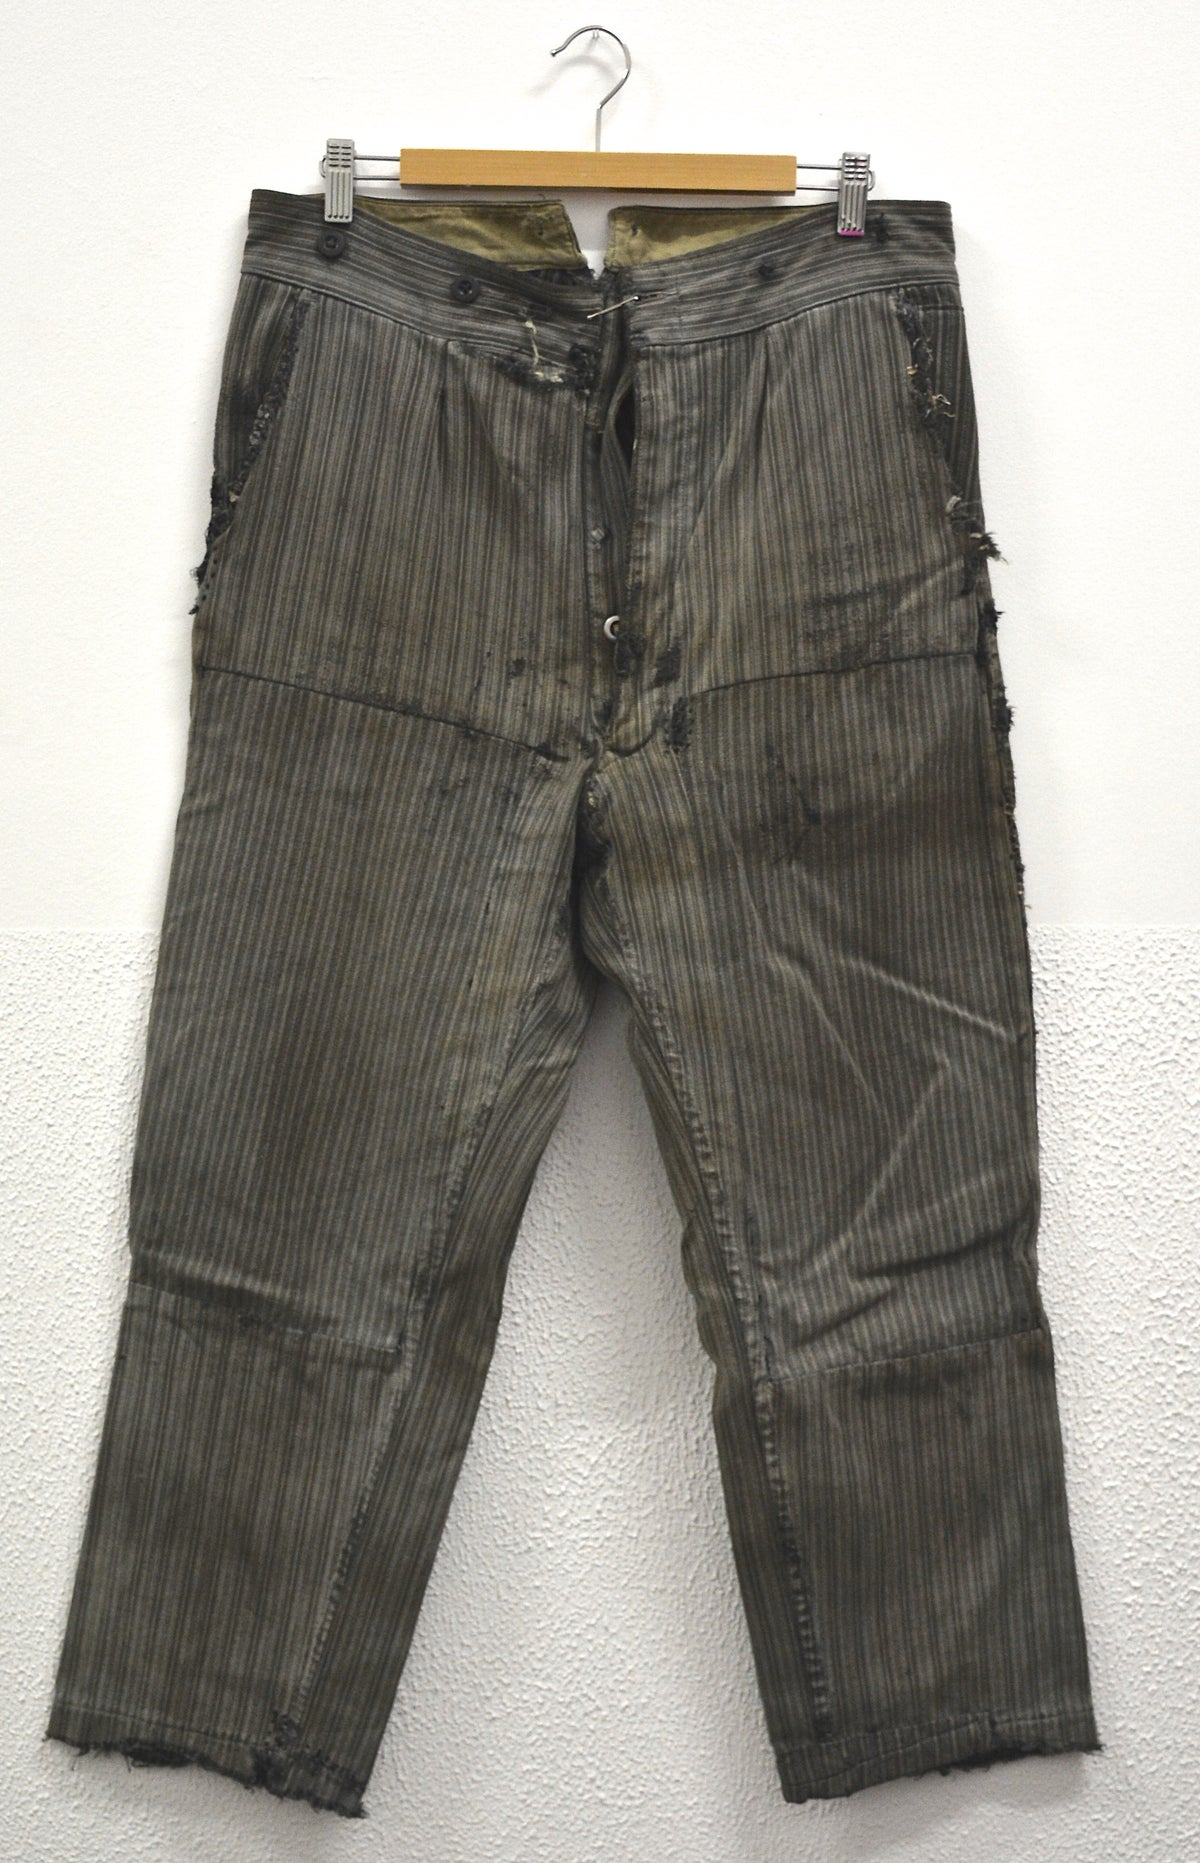 Image of 1900'S FRENCH SALT N' PEPPER STRIPPED PANTS 1 ストライプパッチワークパンツ